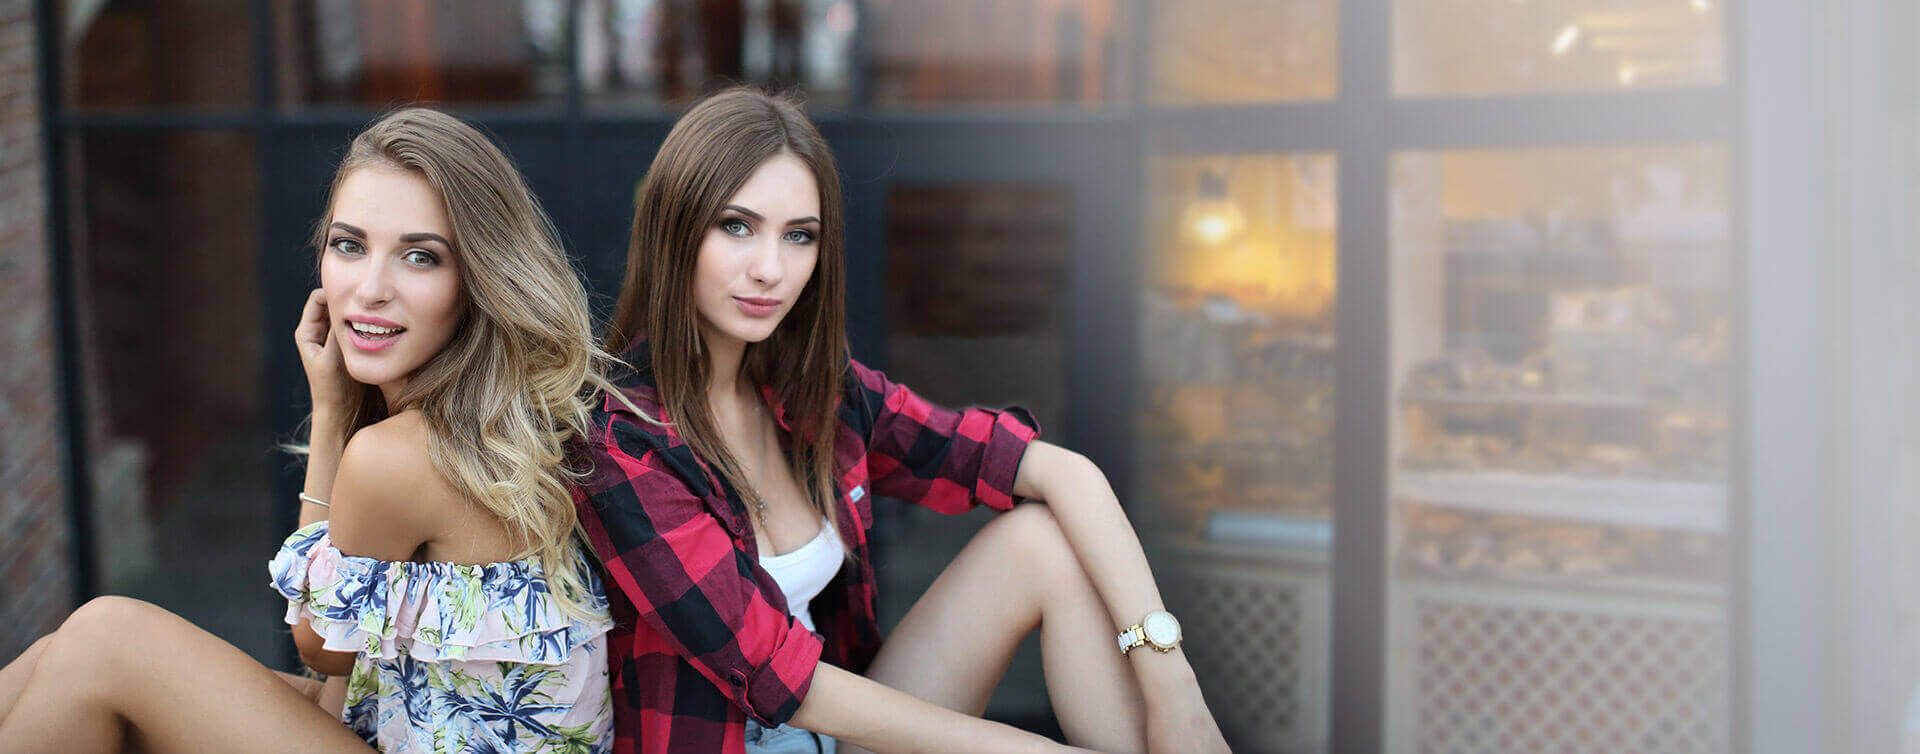 Russian Women & Girls - Elena's Models